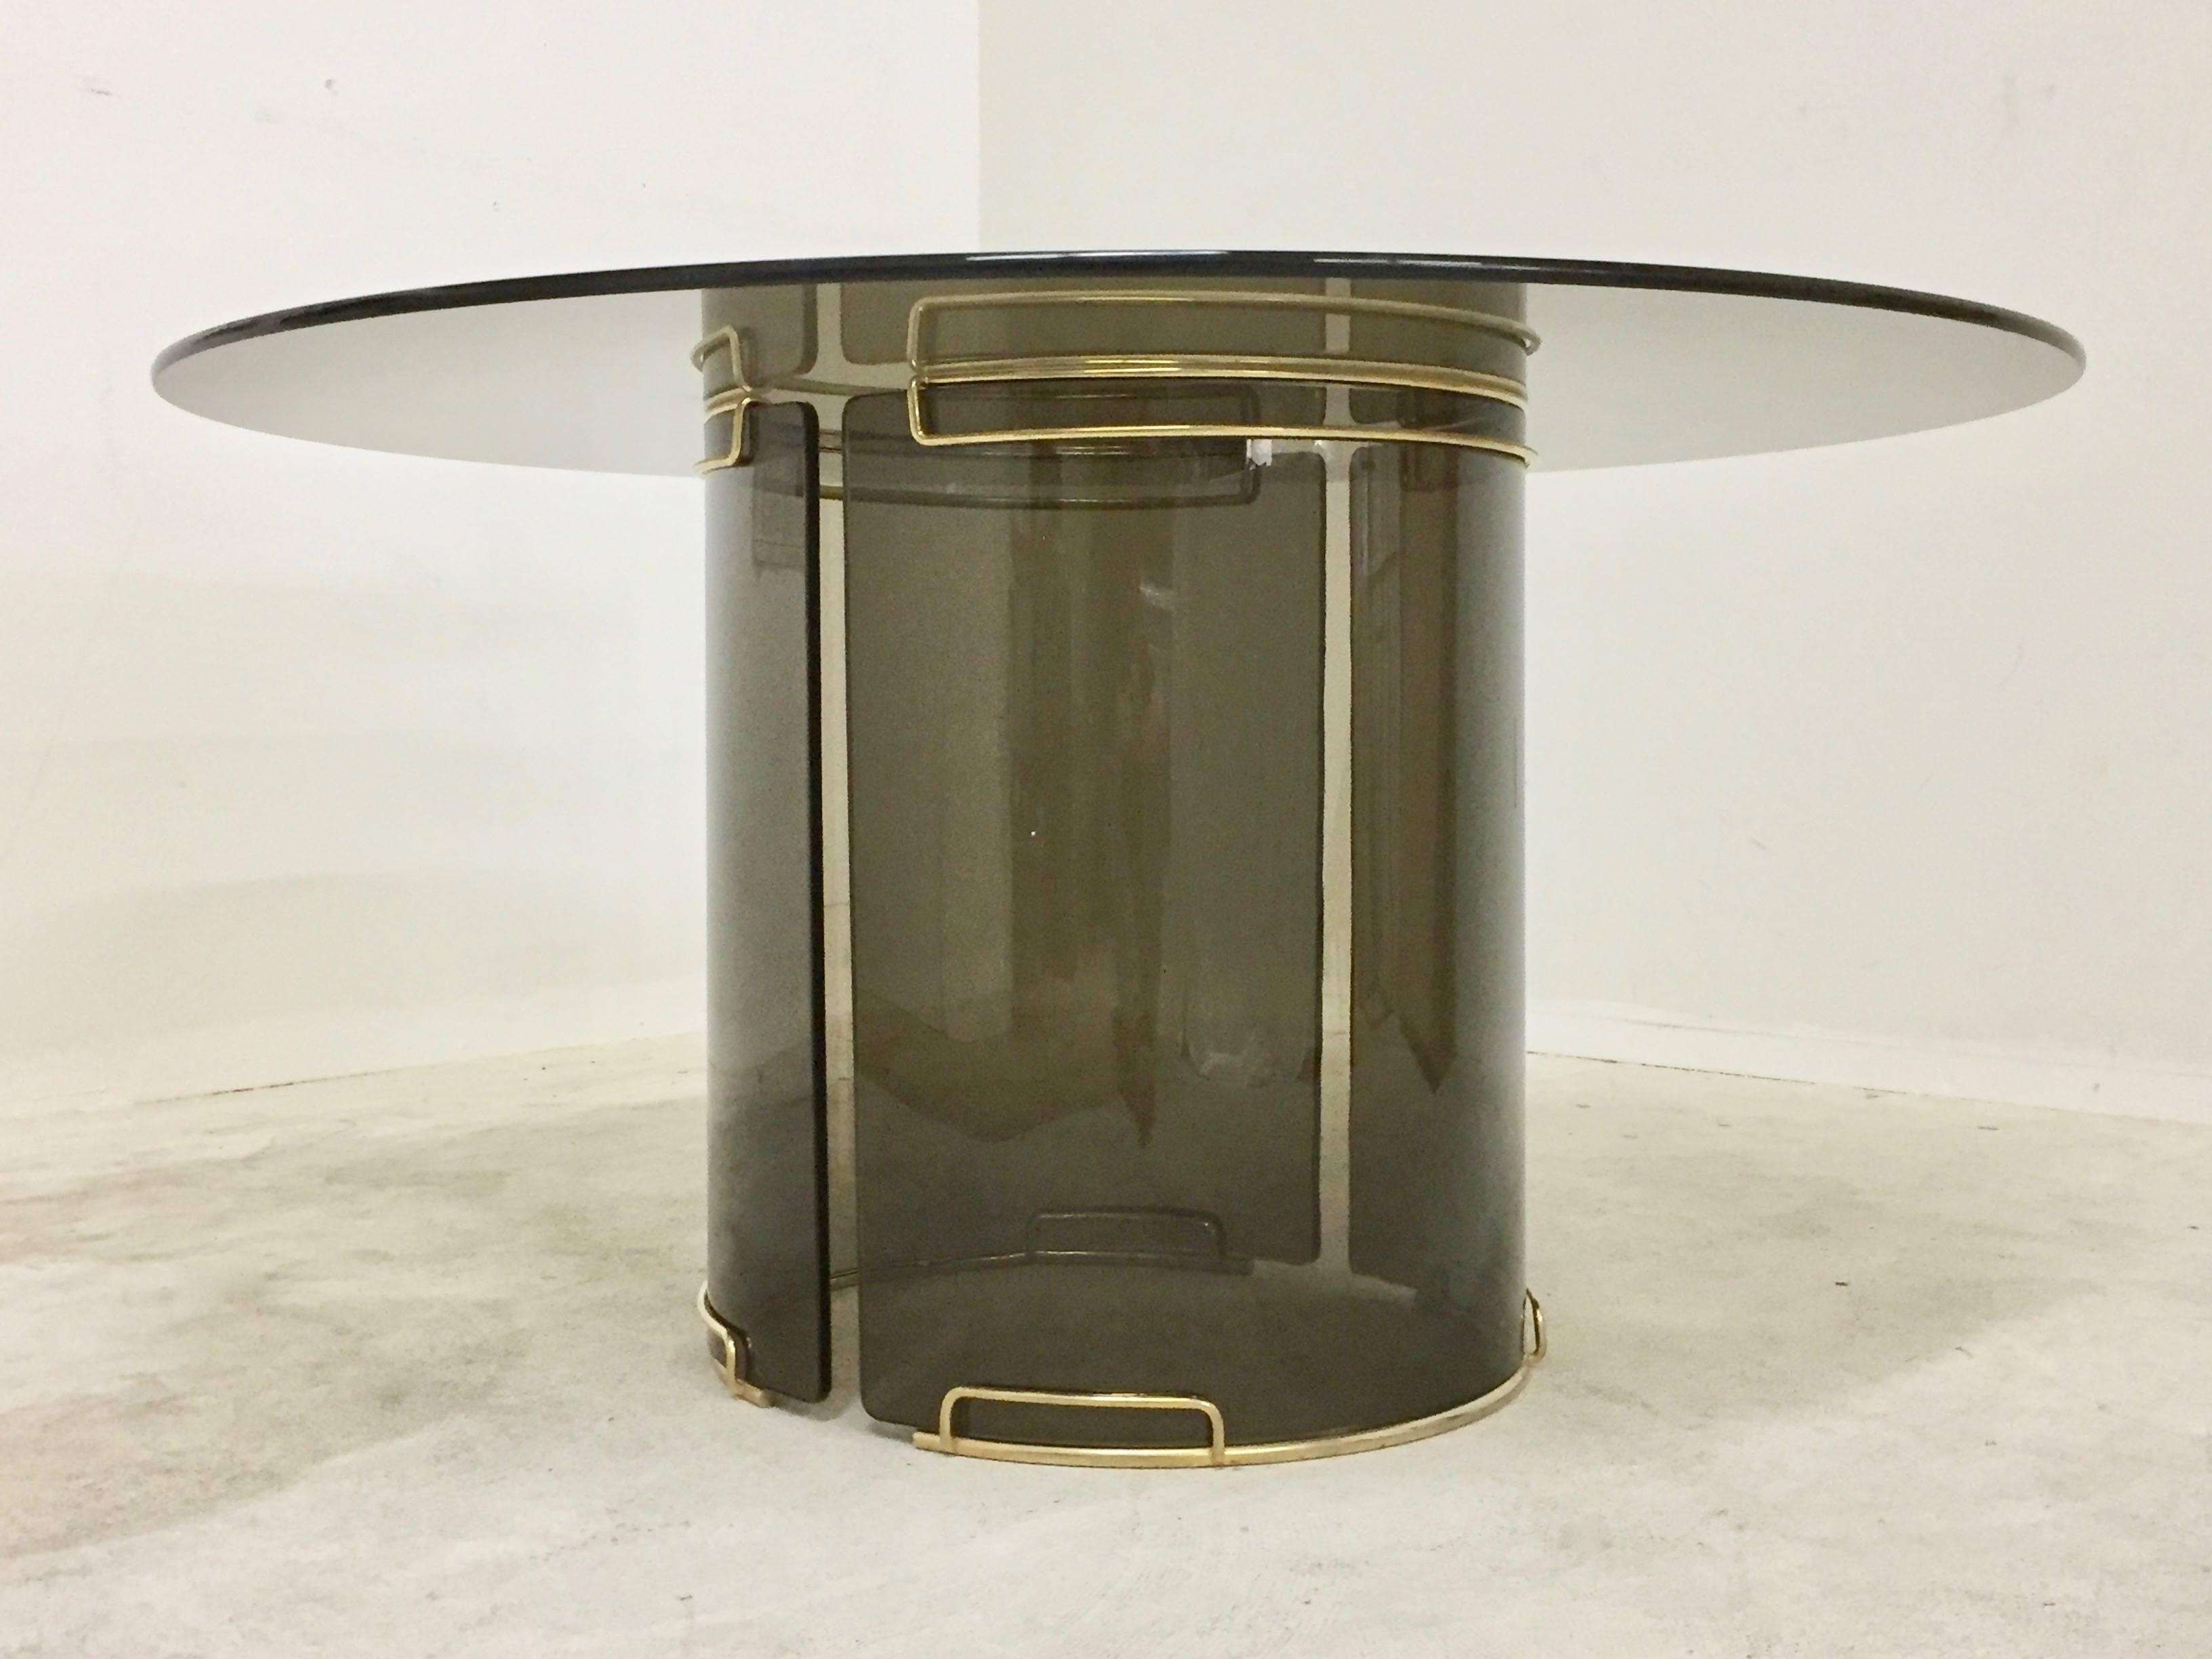 Curved Glass Dining Tables Regarding Popular Round Grey Smoky Glass Dining Table With Curved Glass Base And Brass (View 8 of 25)